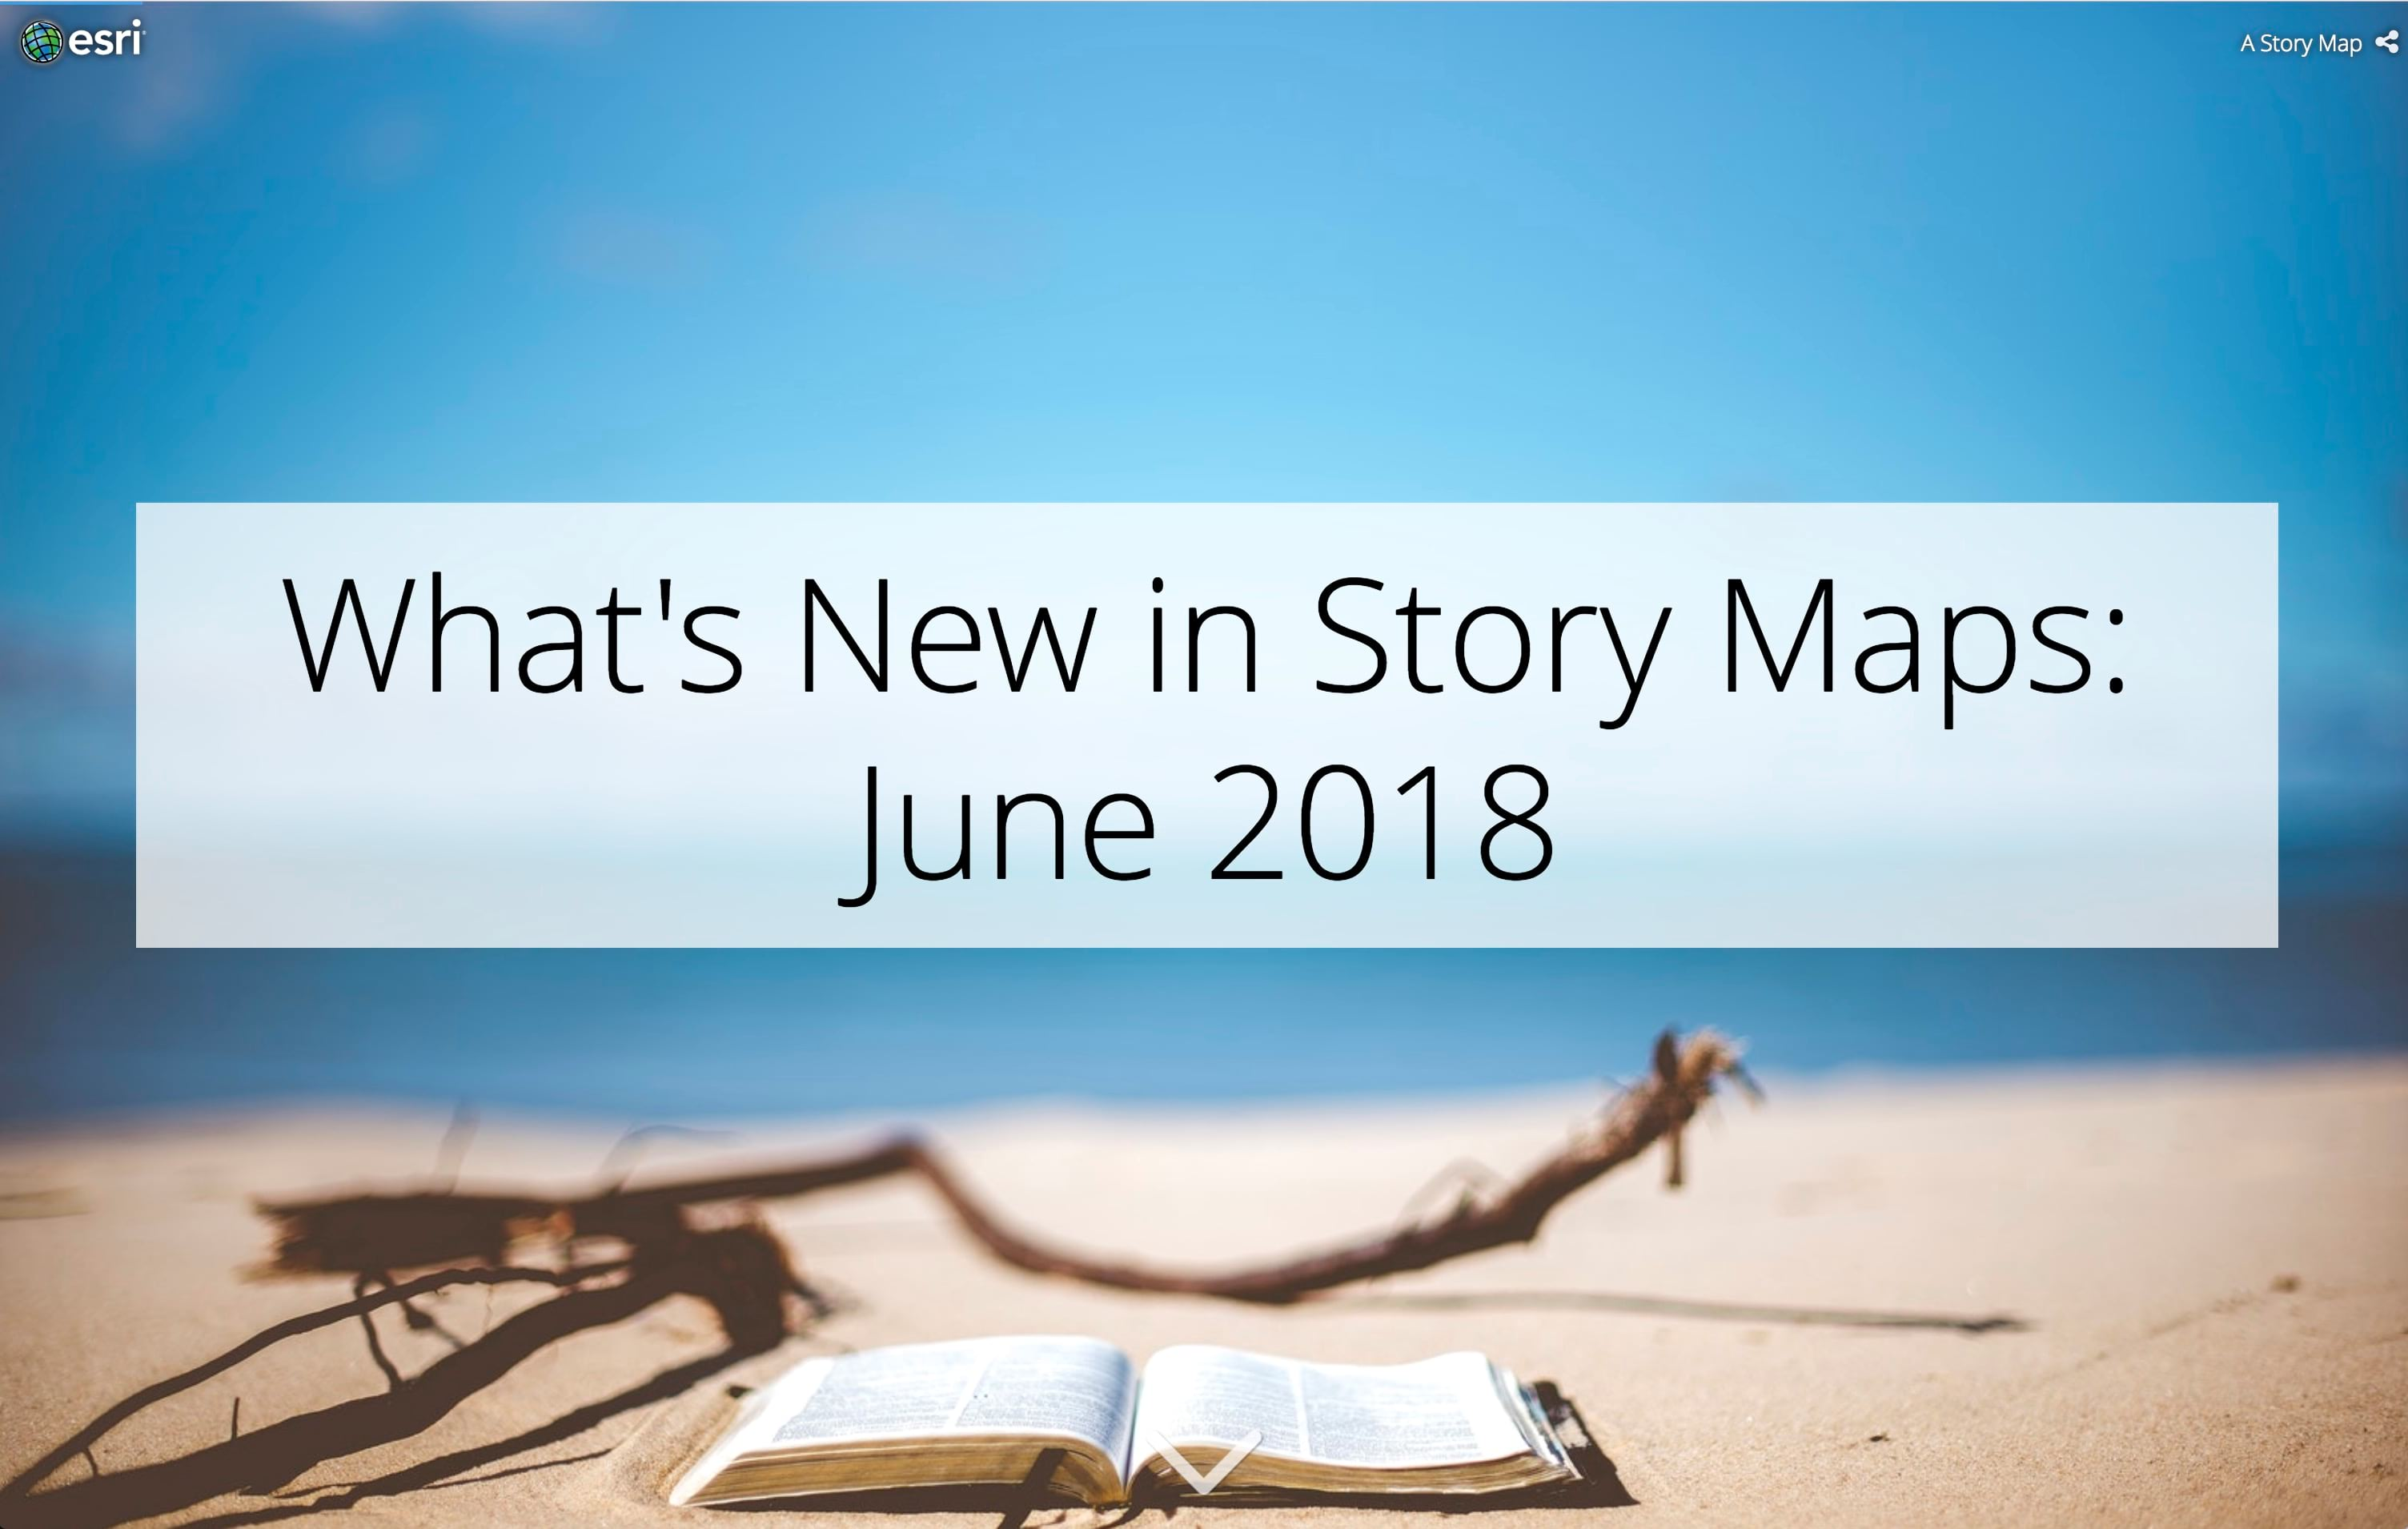 What's New in Story Maps: June 2018